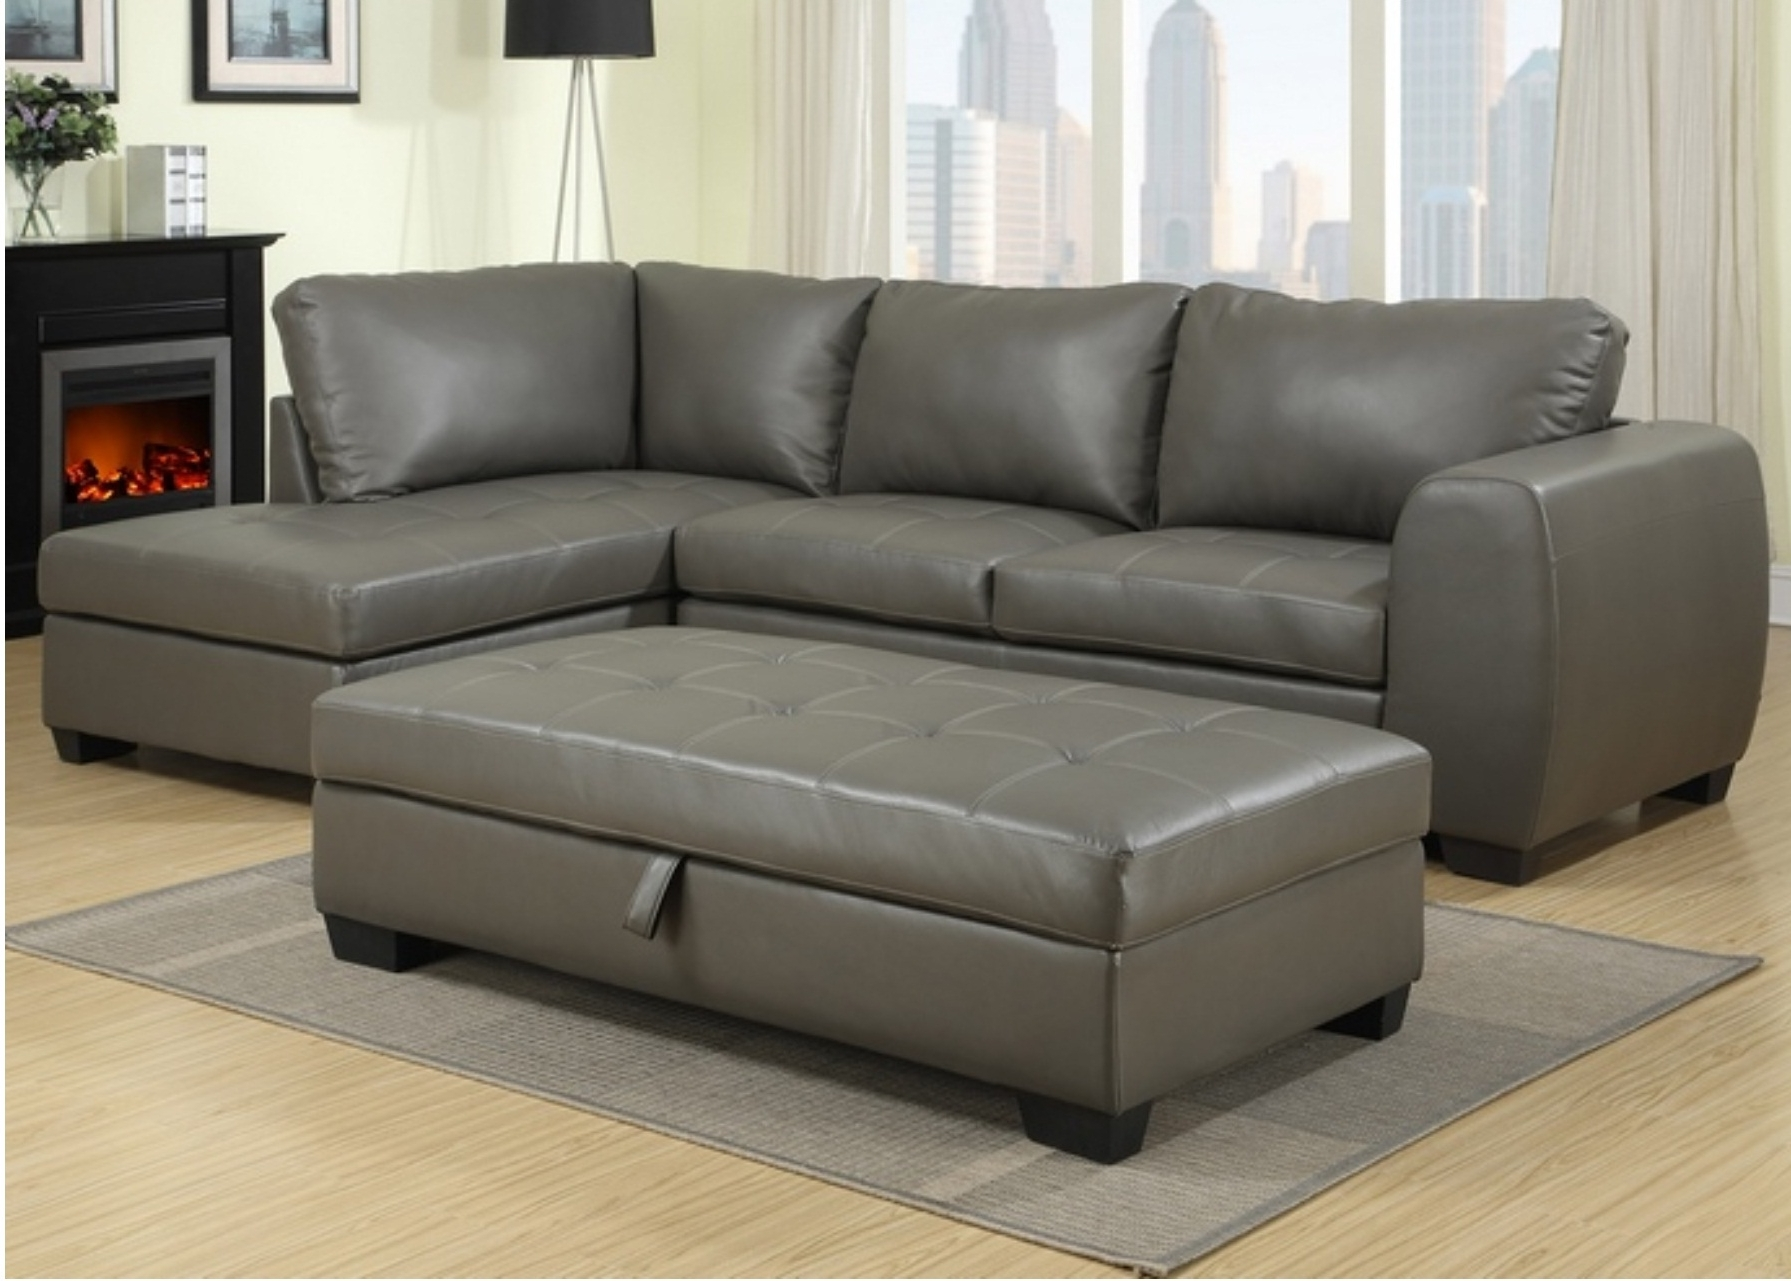 Sectional Couch Bluetonrniture Sets Sofa Inches Day Fiance For Trendy Kijiji Calgary Sectional Sofas (View 5 of 20)